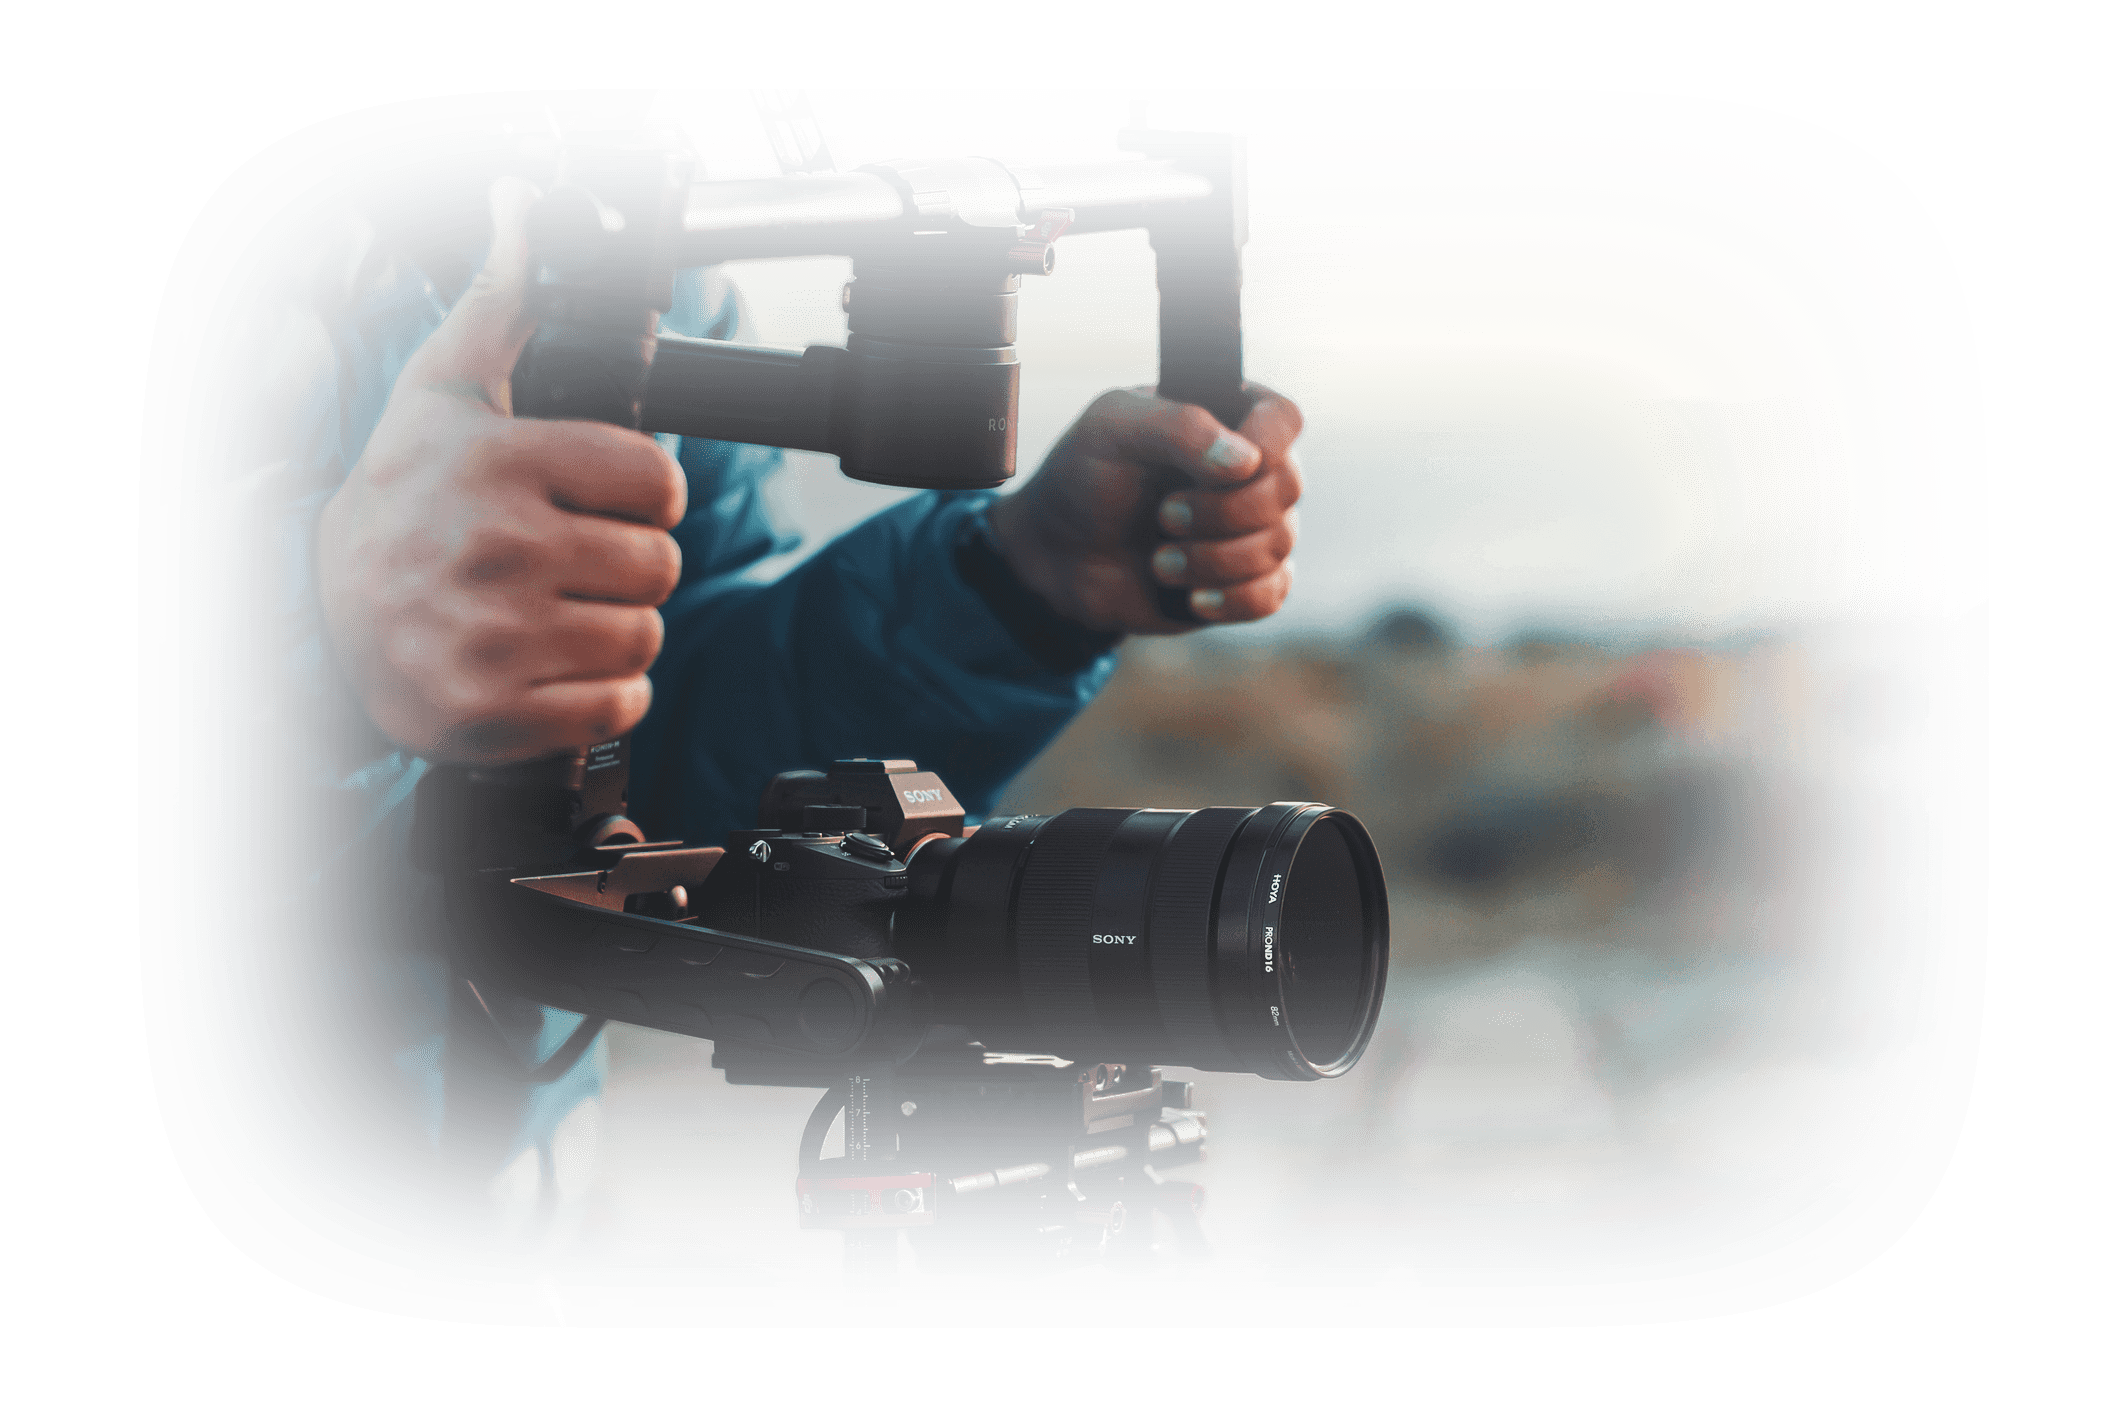 Sterling Select - Insurance to address the specific needs of professionals in the entertainment field, including sound & lighting engineers, production companies, photographers, videographers, theatre companies, dance troupes, broadcasters, and more